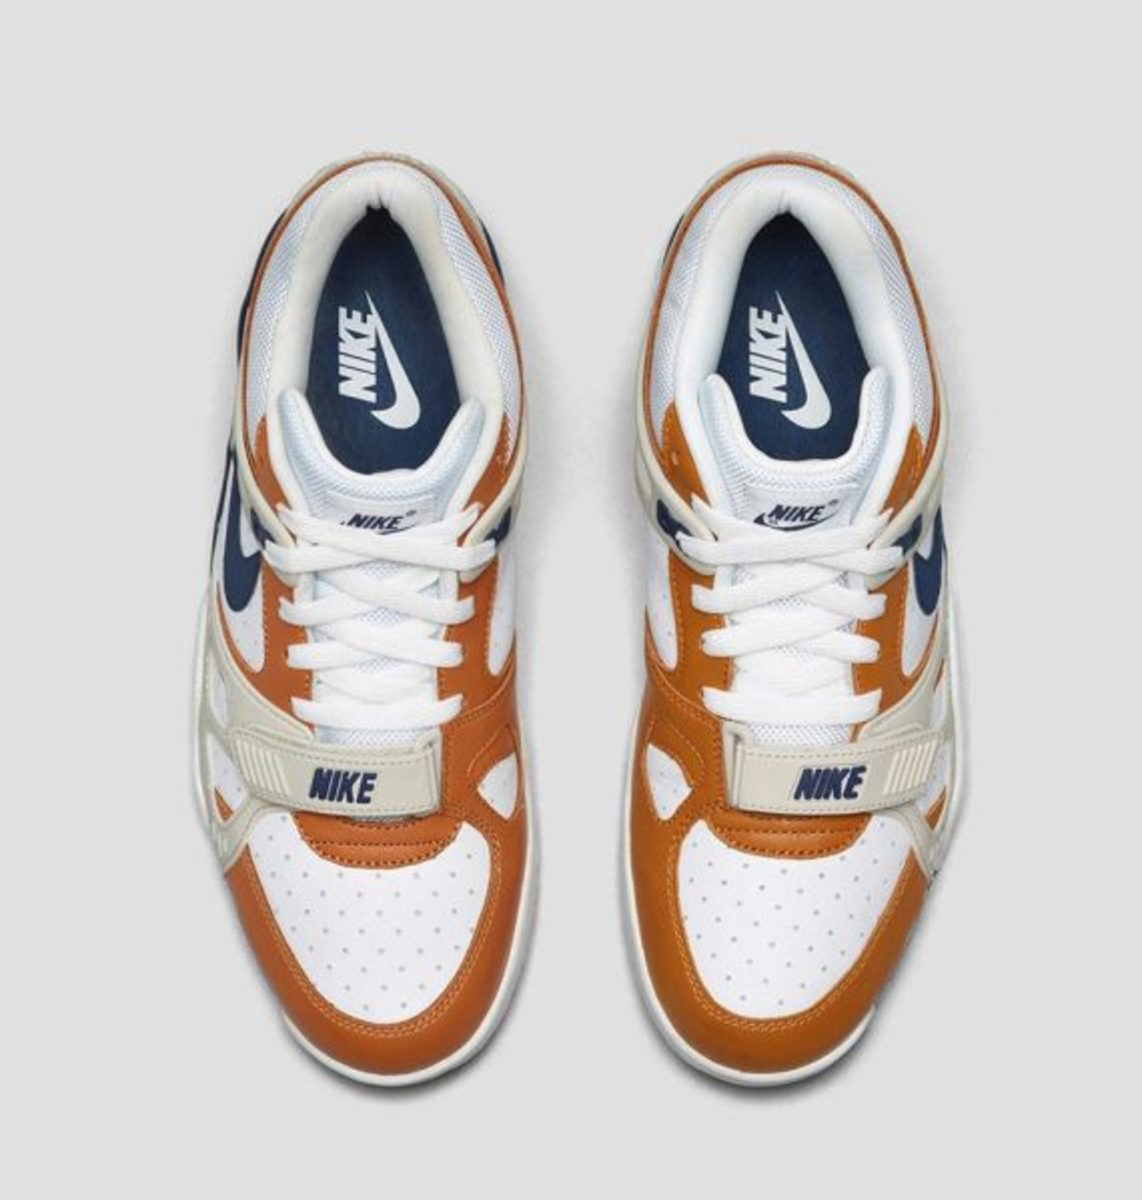 nike-air-trainer-medicine-ball-collection-nikestore-release-03